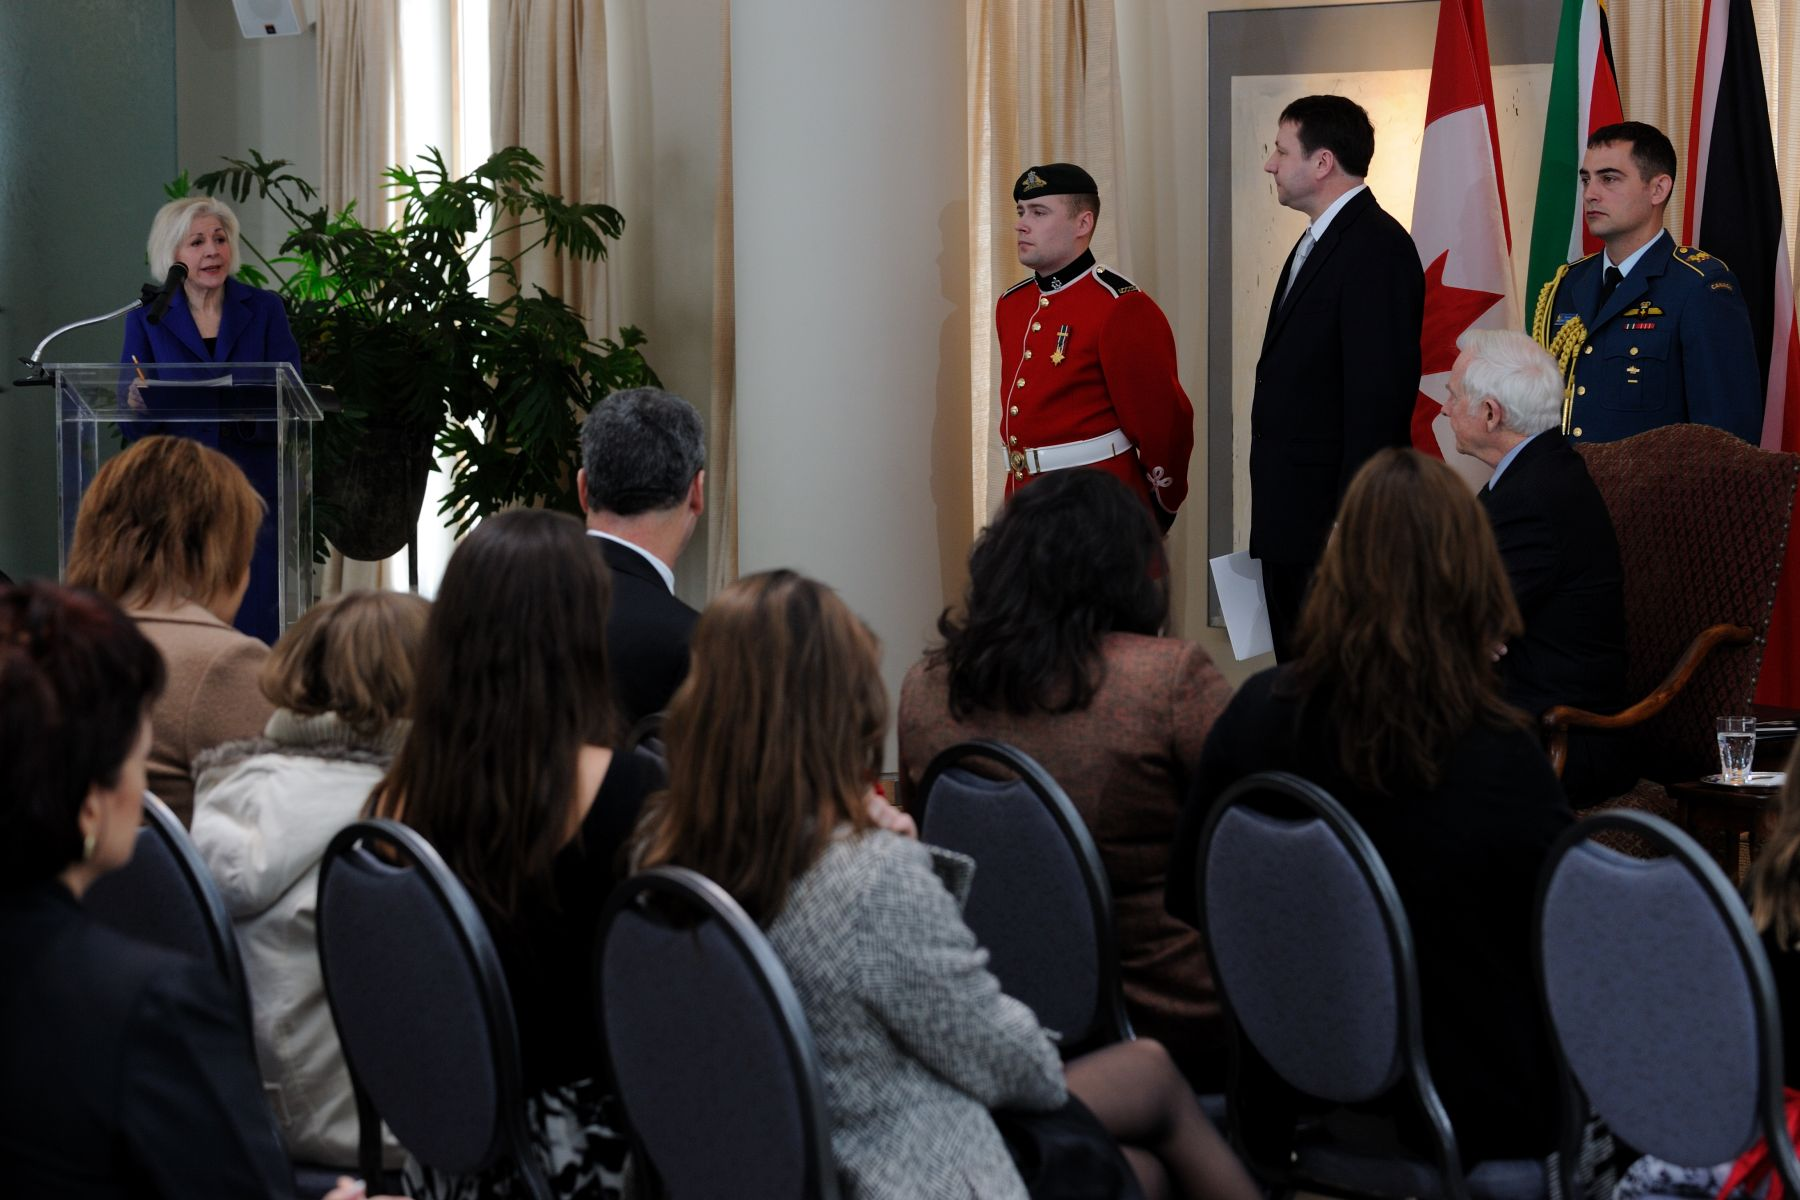 On the morning of February 8, 2011, His Excellency the Right Honourable David Johnston, Governor General of Canada, received the credentials of two High commissioners and four ambassadors. It was the first credentials presentation ceremony for Ms. Margaret Huber, Chief of Protocol of Canada.